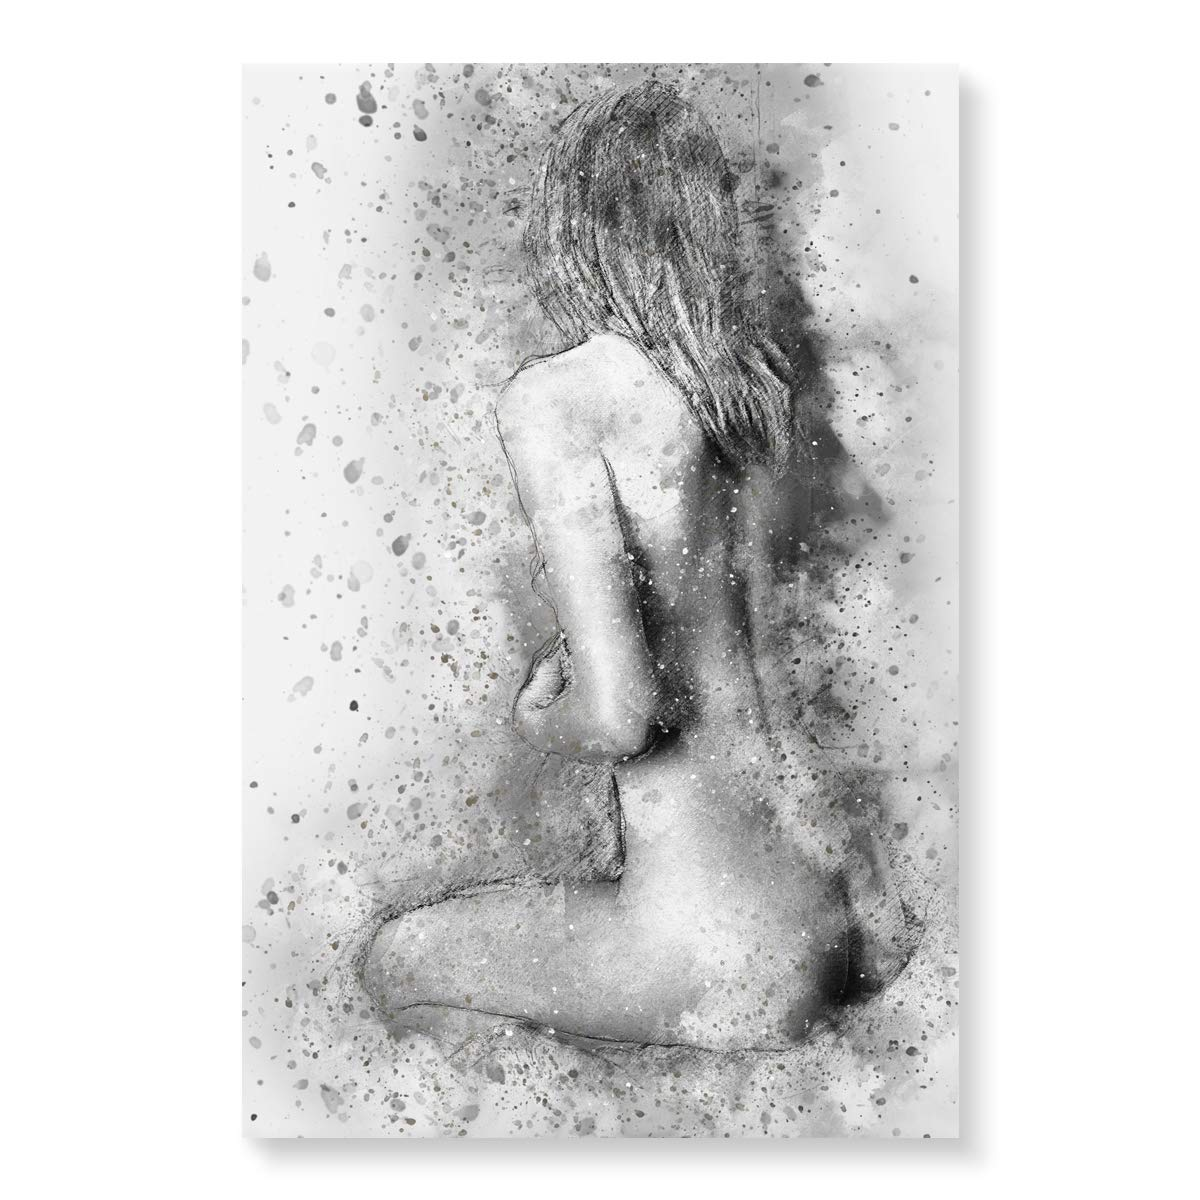 Sexy woman picture nude body oil painting wall art sex girl back hand painted black and white sketch artwork for bedroom living room modern handmade